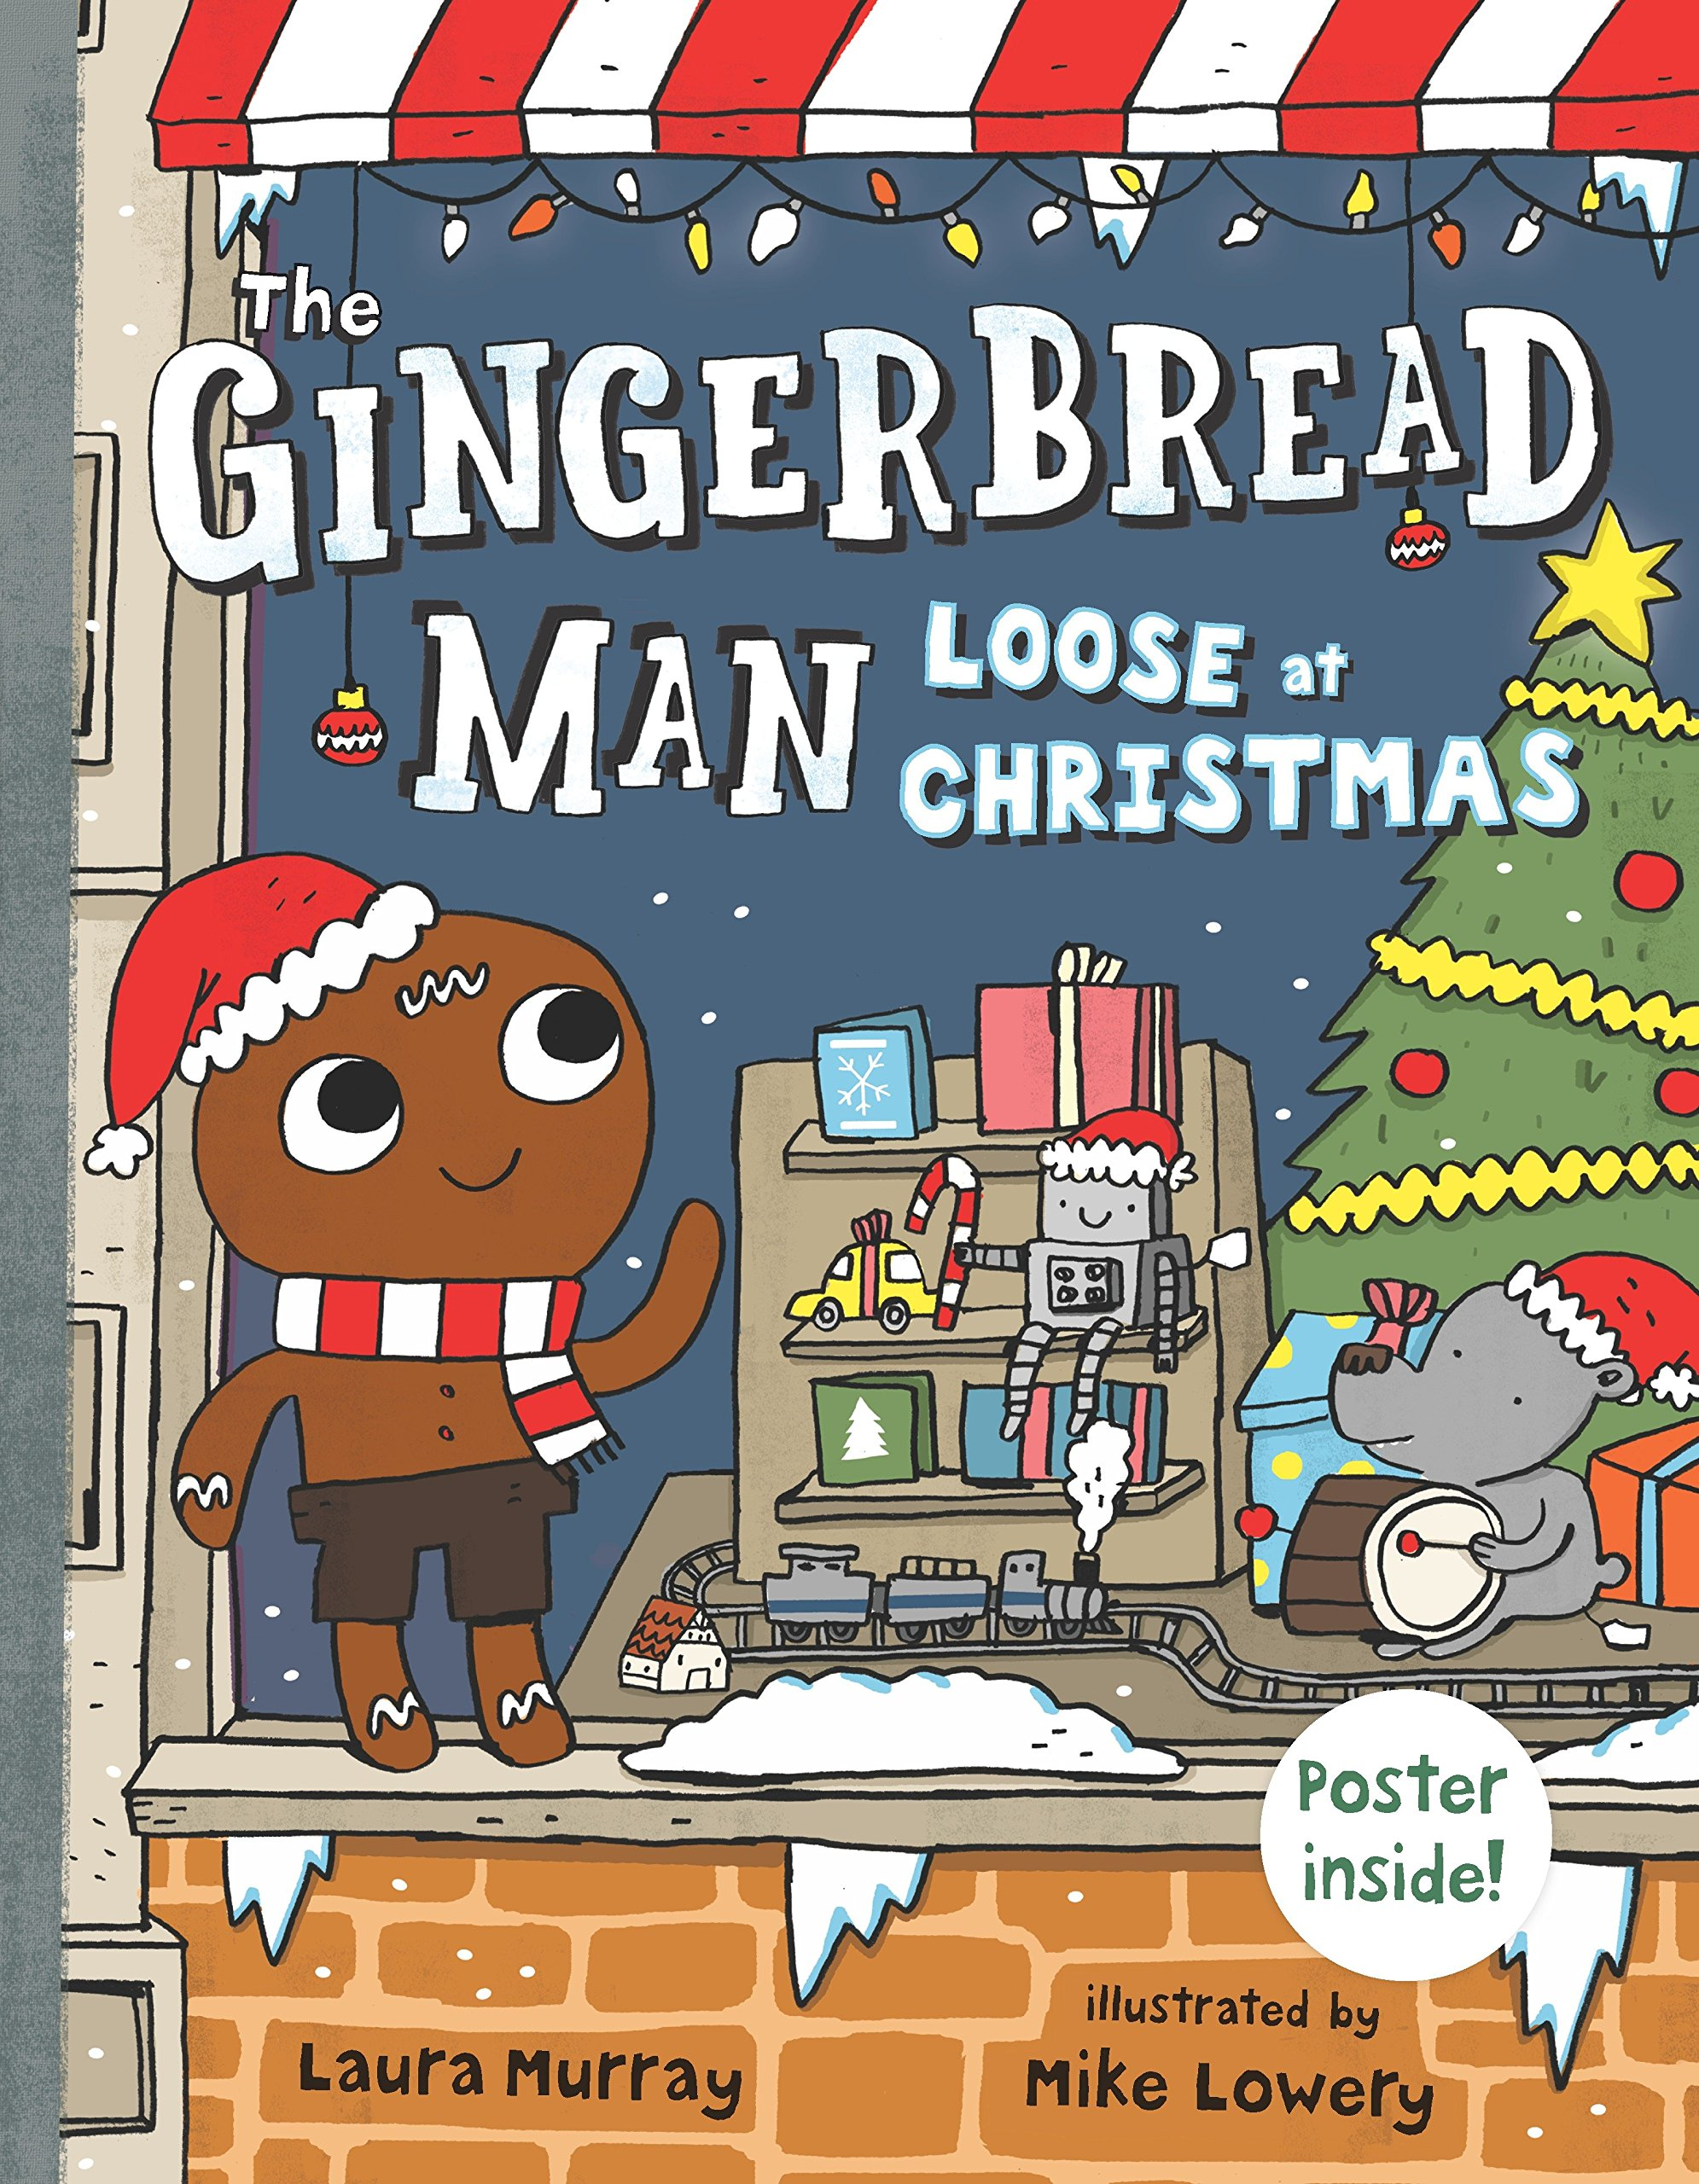 celebrate-picture-books-picture-book-review-the-gingerbread-man-loose-at-christmas-cover